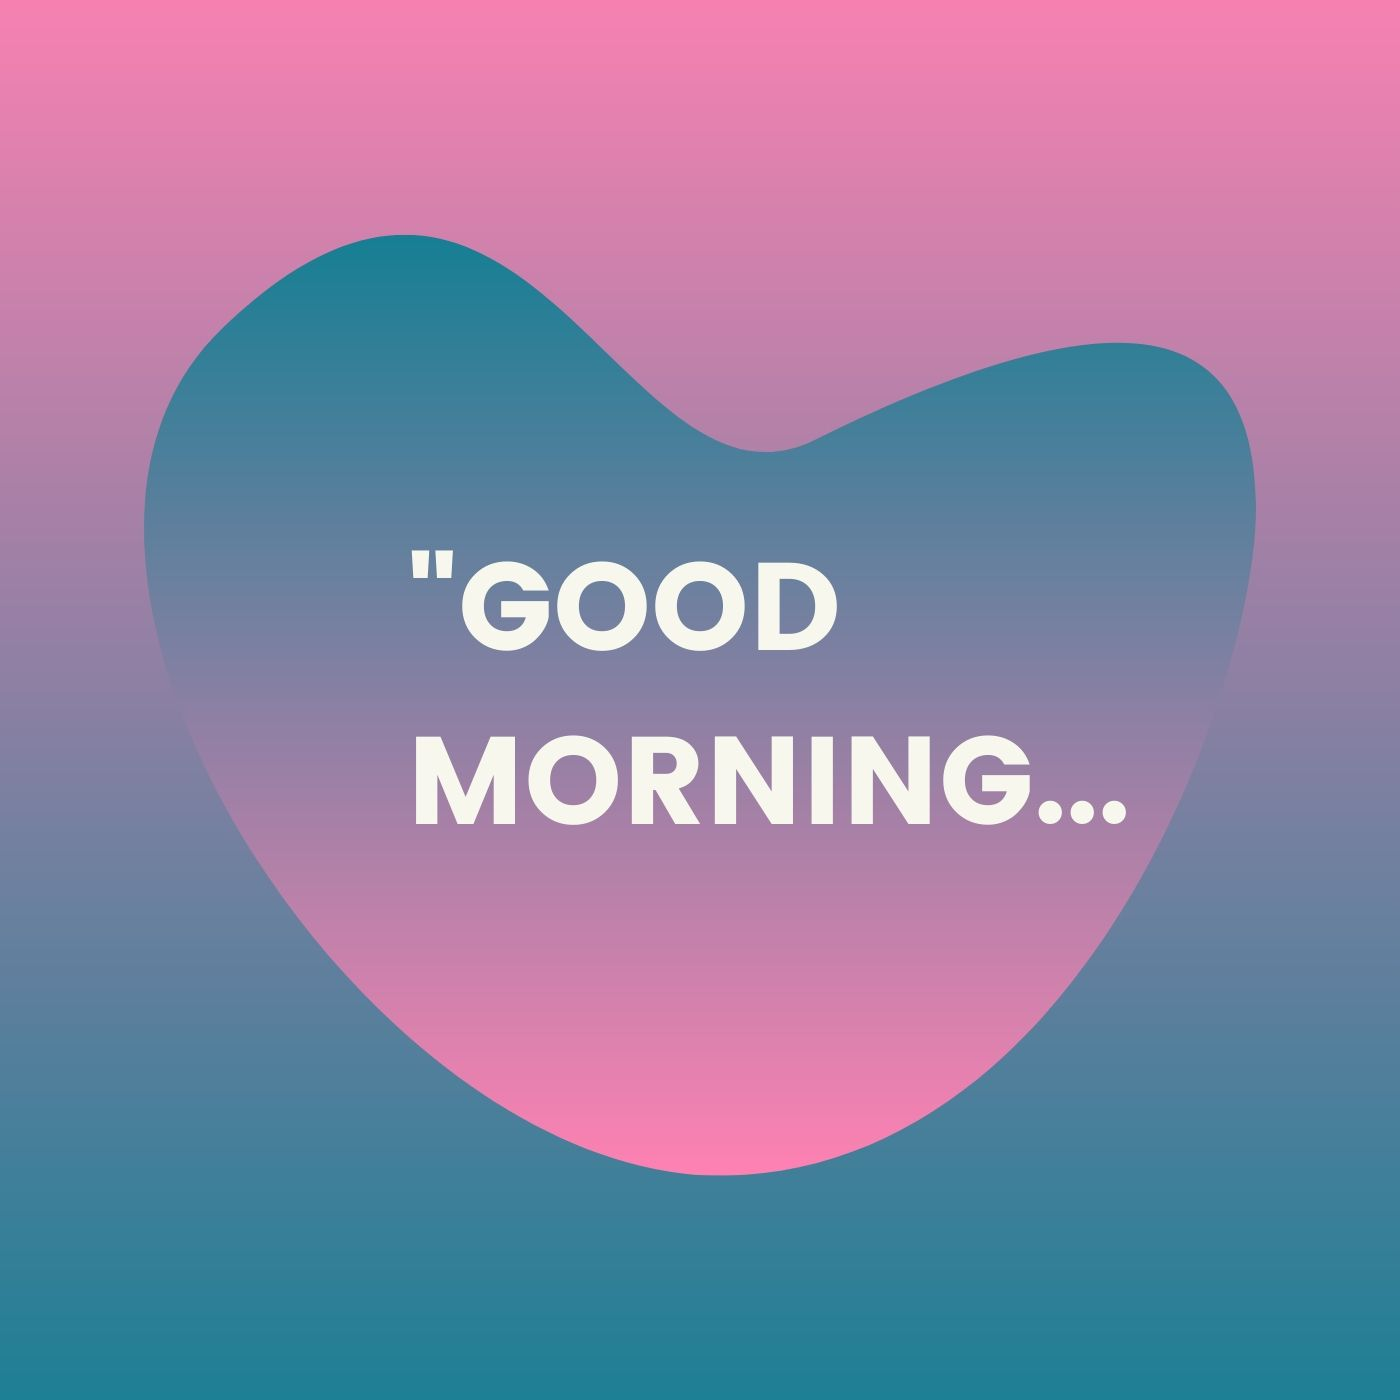 Good Morning Picture Love full HD free download.